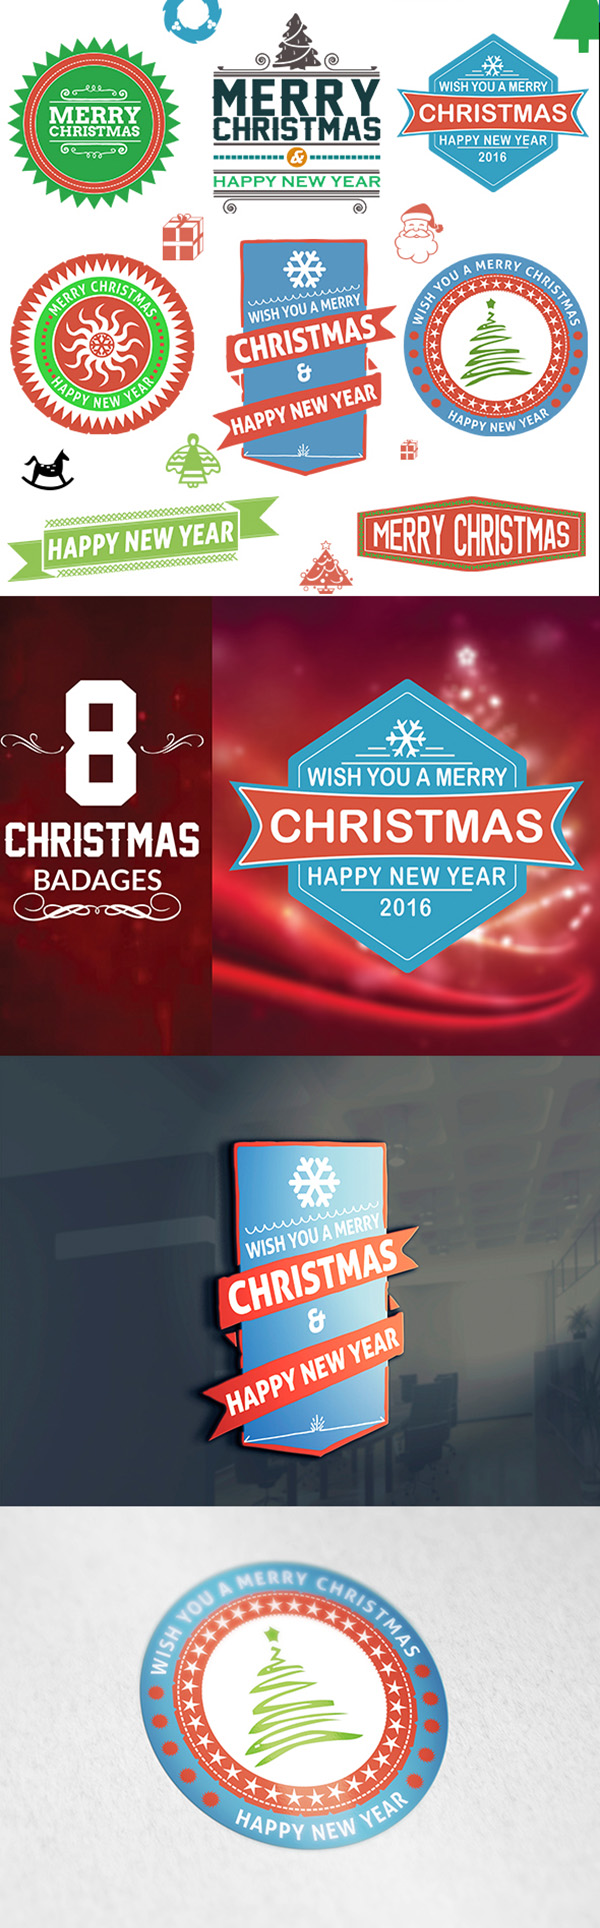 04 Free Christmas Badges Download